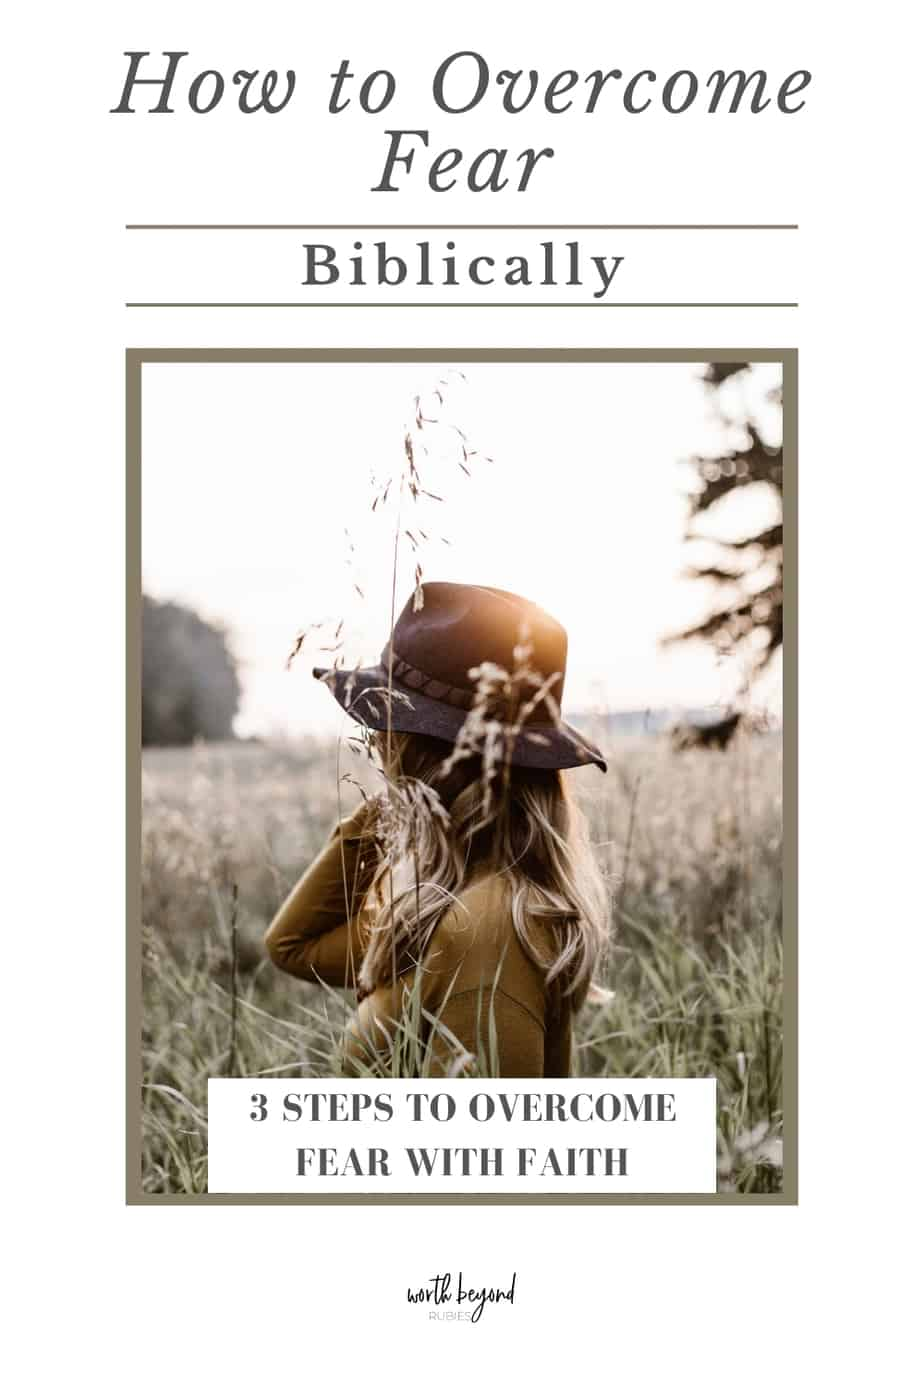 A woman in a hat in a field looking away and text overlay that says How to Overcome Fear Biblically - 3 Steps for Overcoming Fear With Faith